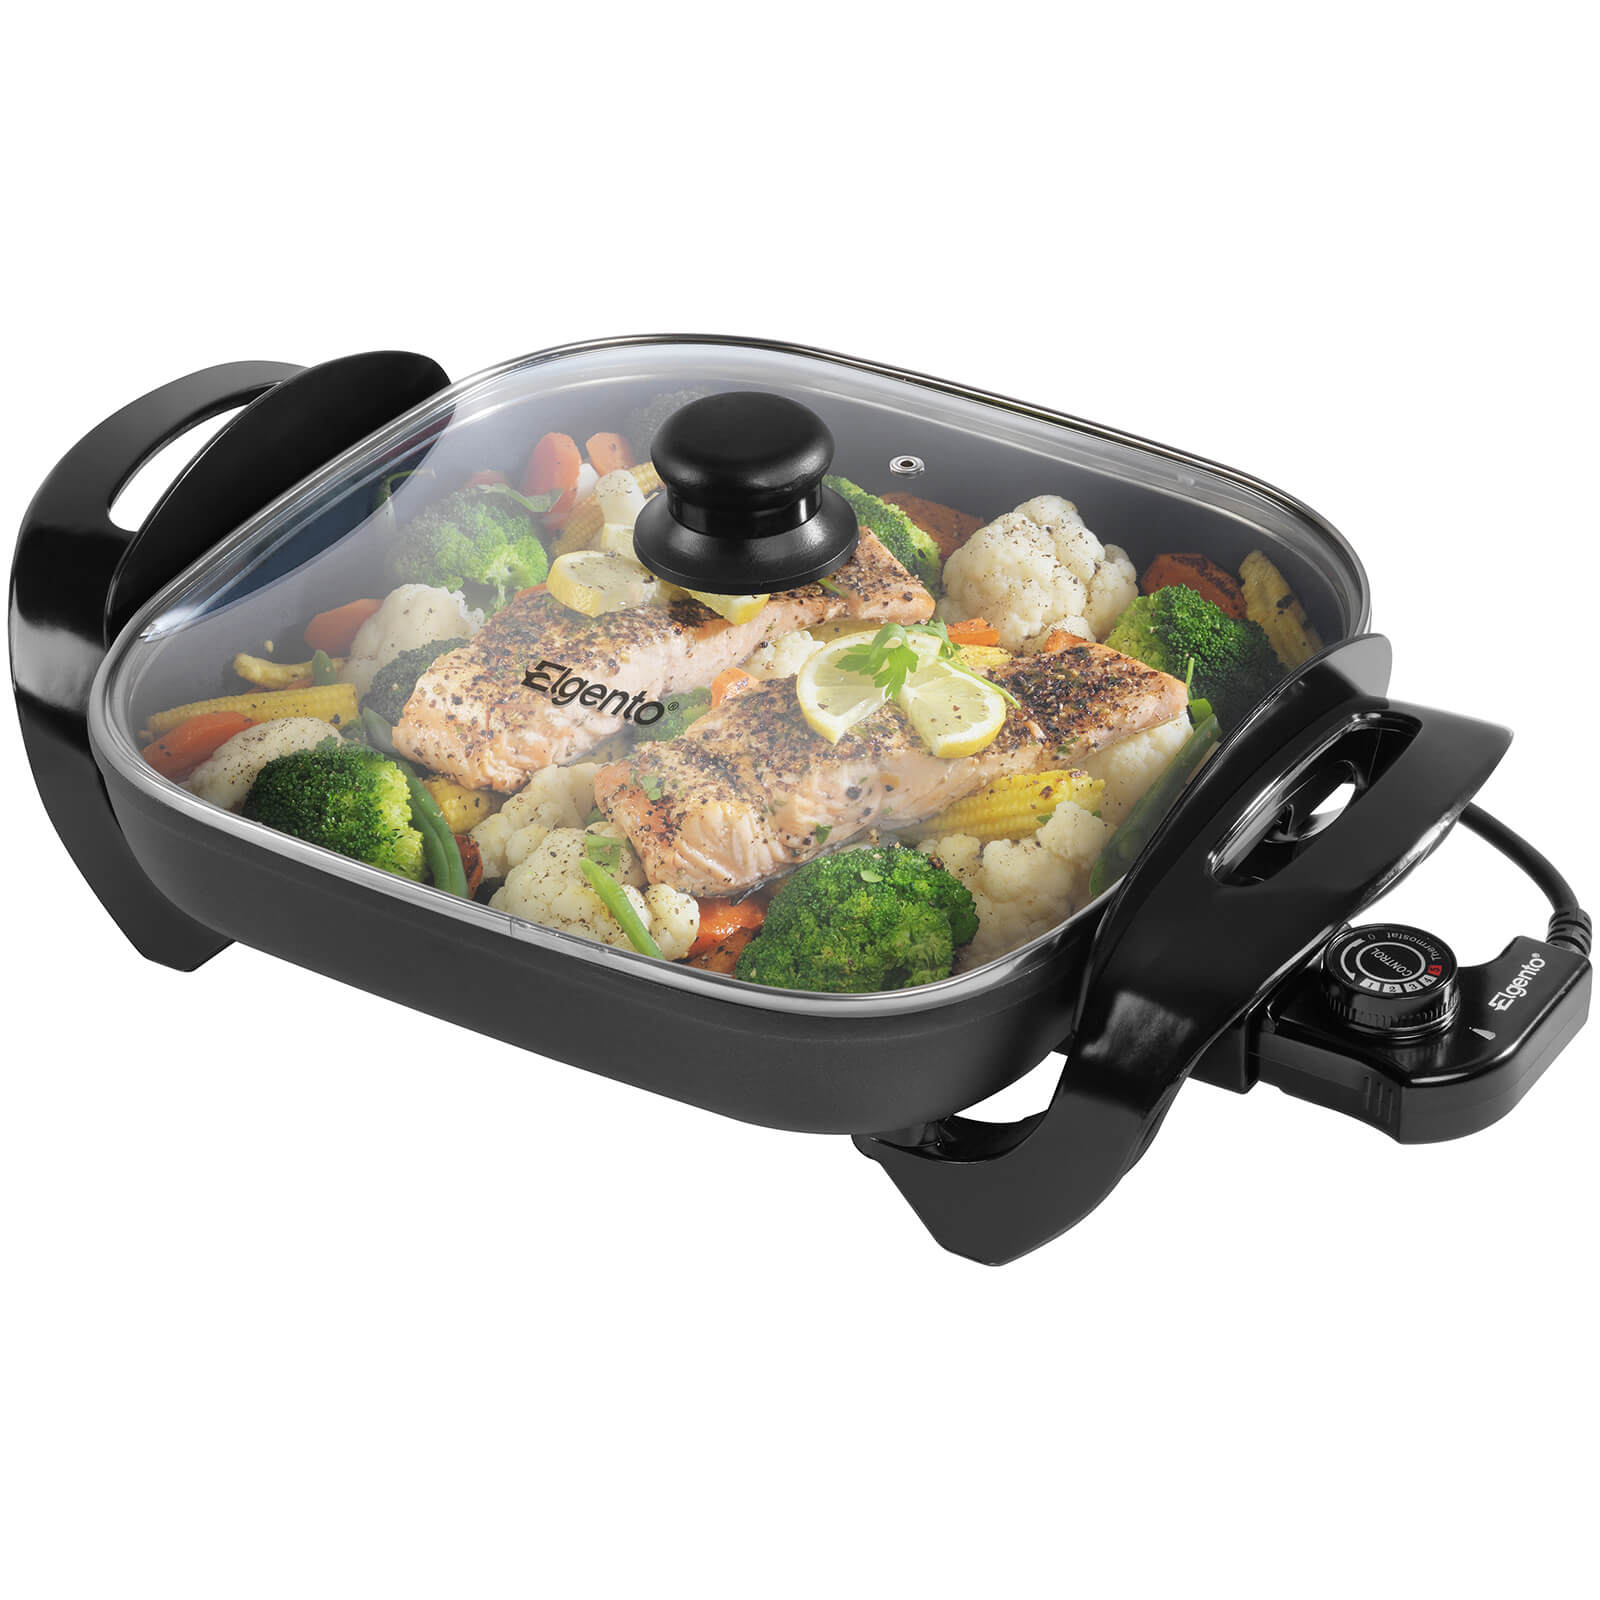 Elgento E14024 Electric Frying Pan Black 30cm Iwoot